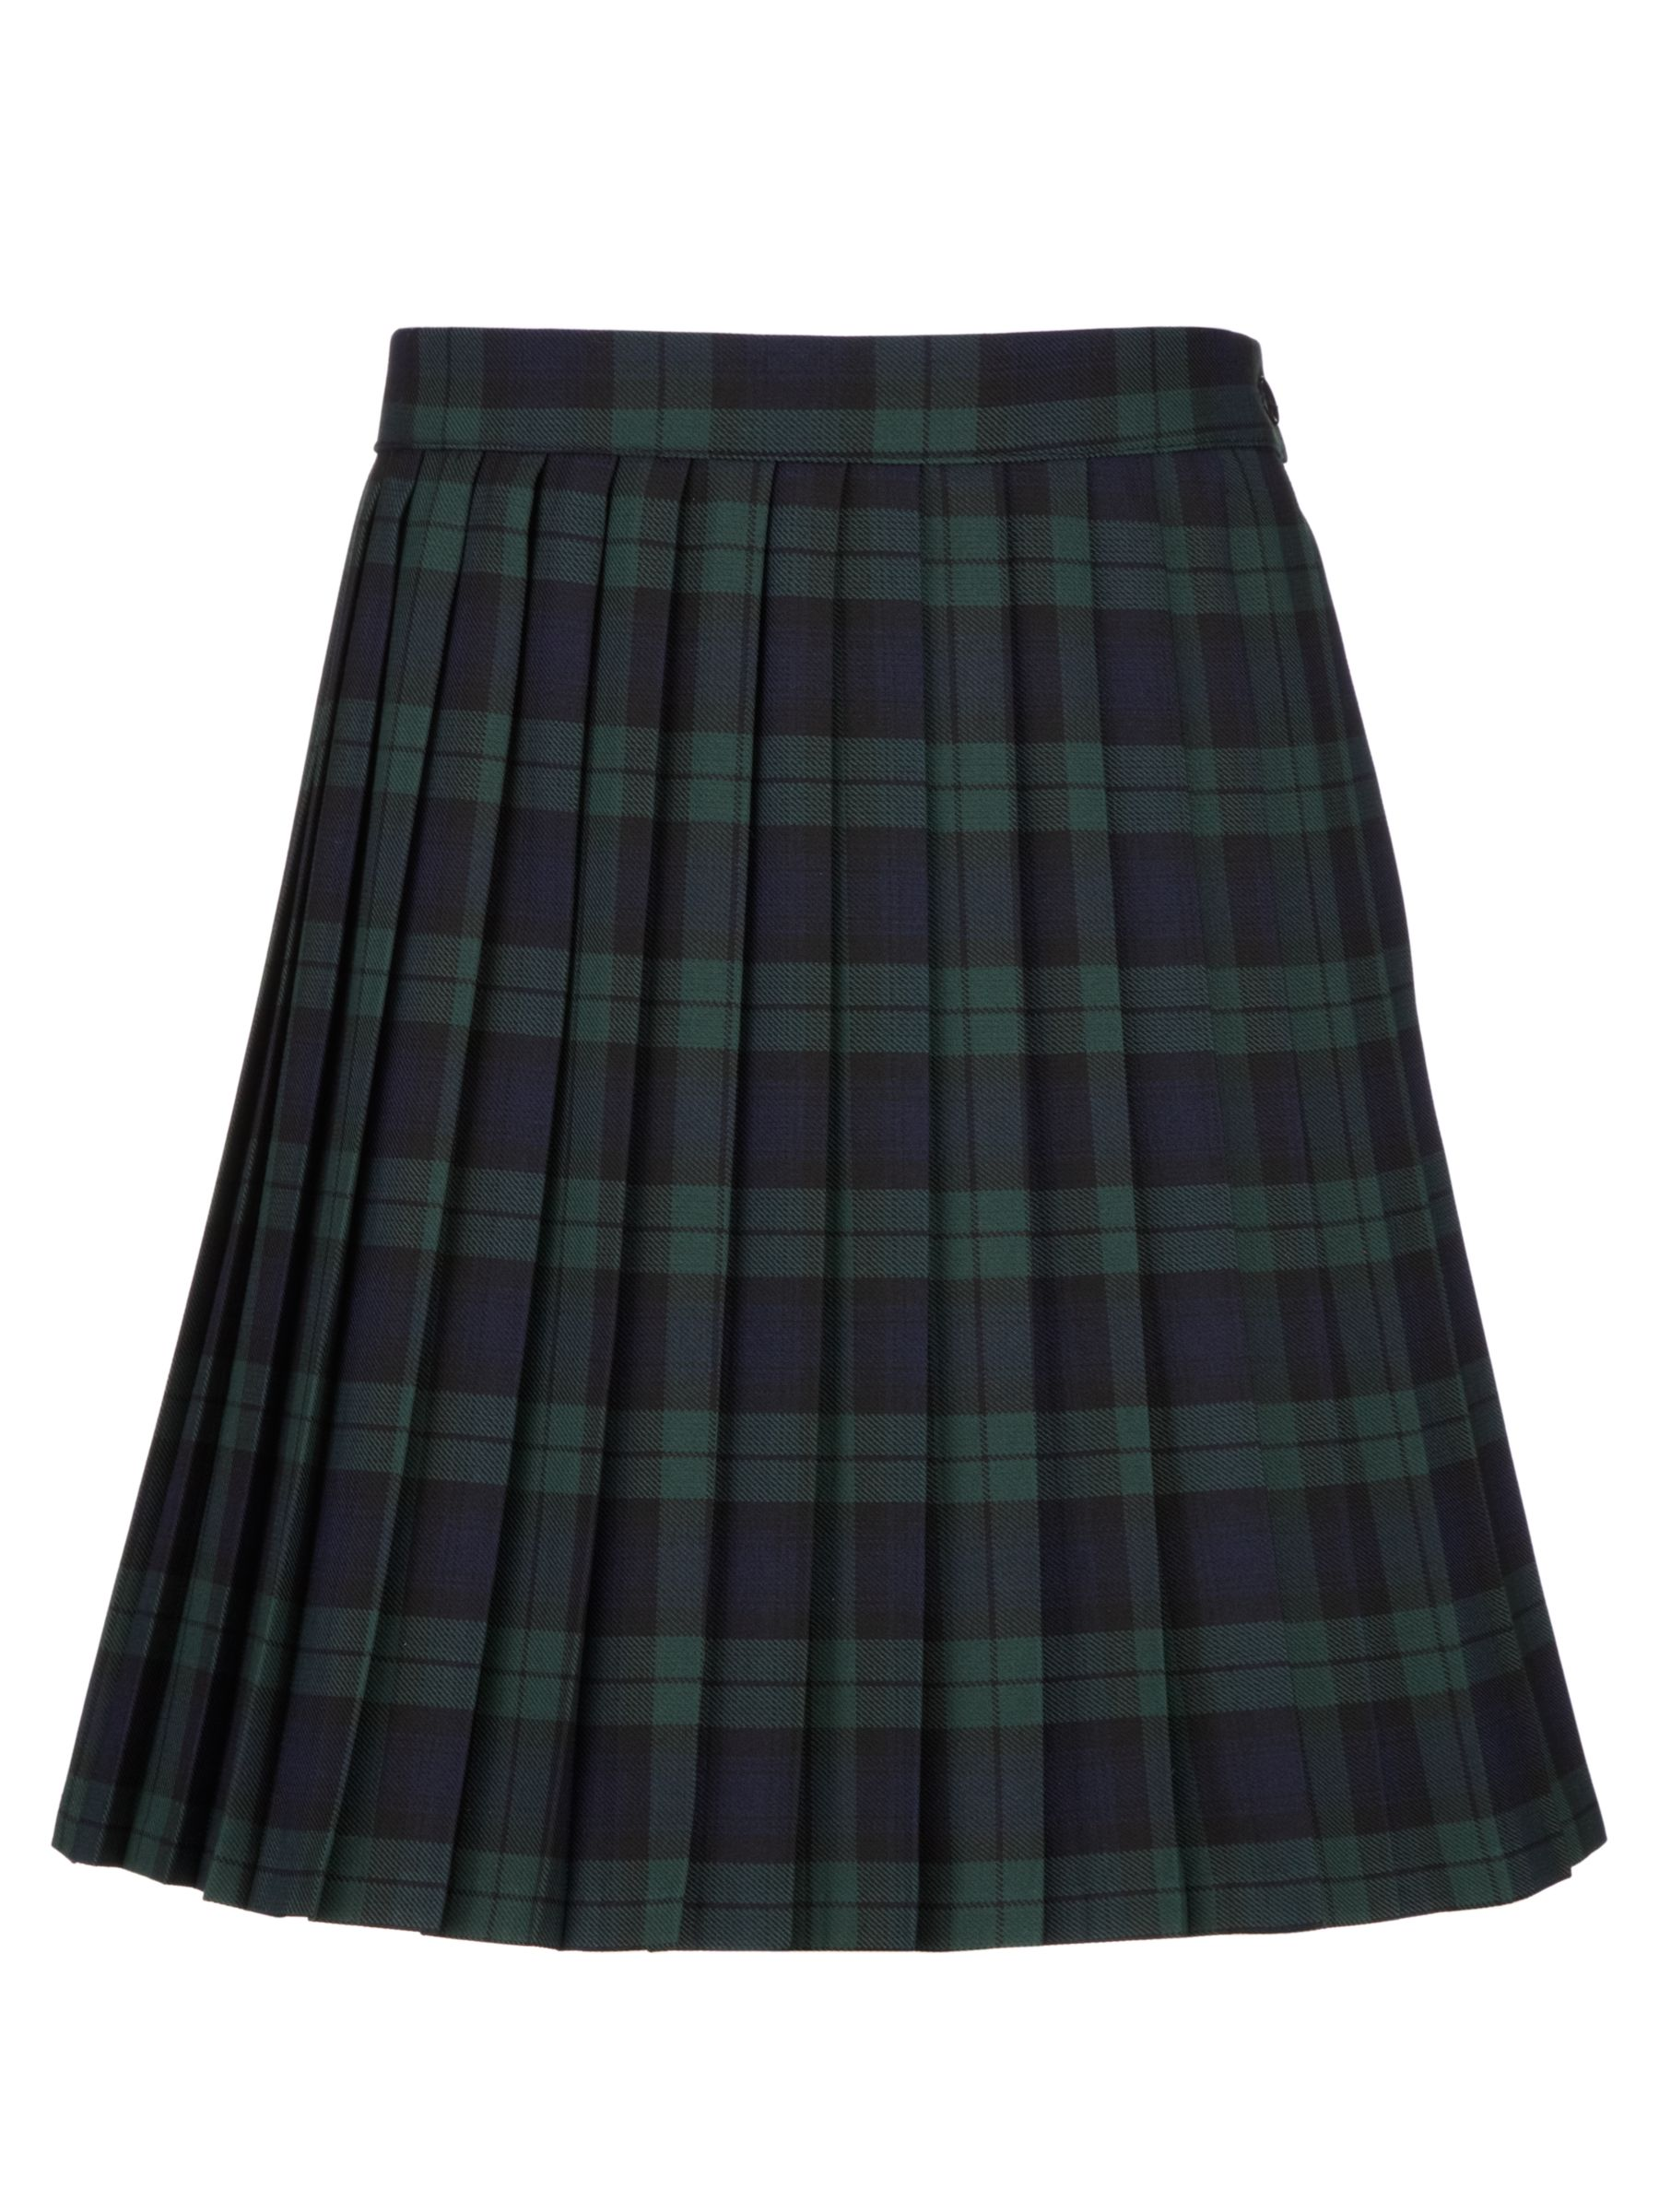 buy cheap school pleated skirt compare fancy dress